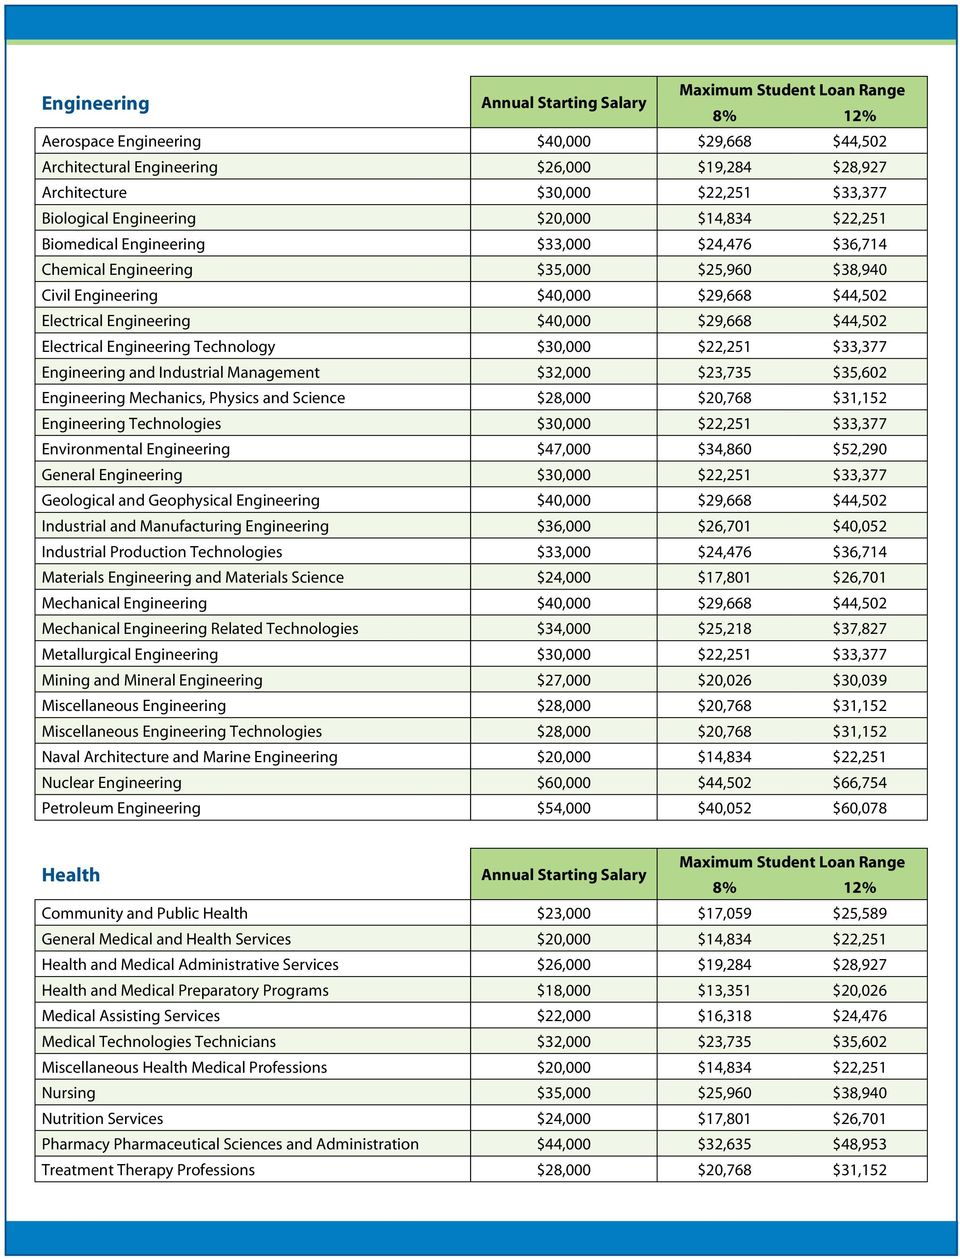 Engineering Technology $30,000 $22,251 $33,377 Engineering and Industrial Management $32,000 $23,735 $35,602 Engineering Mechanics, Physics and Science $28,000 $20,768 $31,152 Engineering